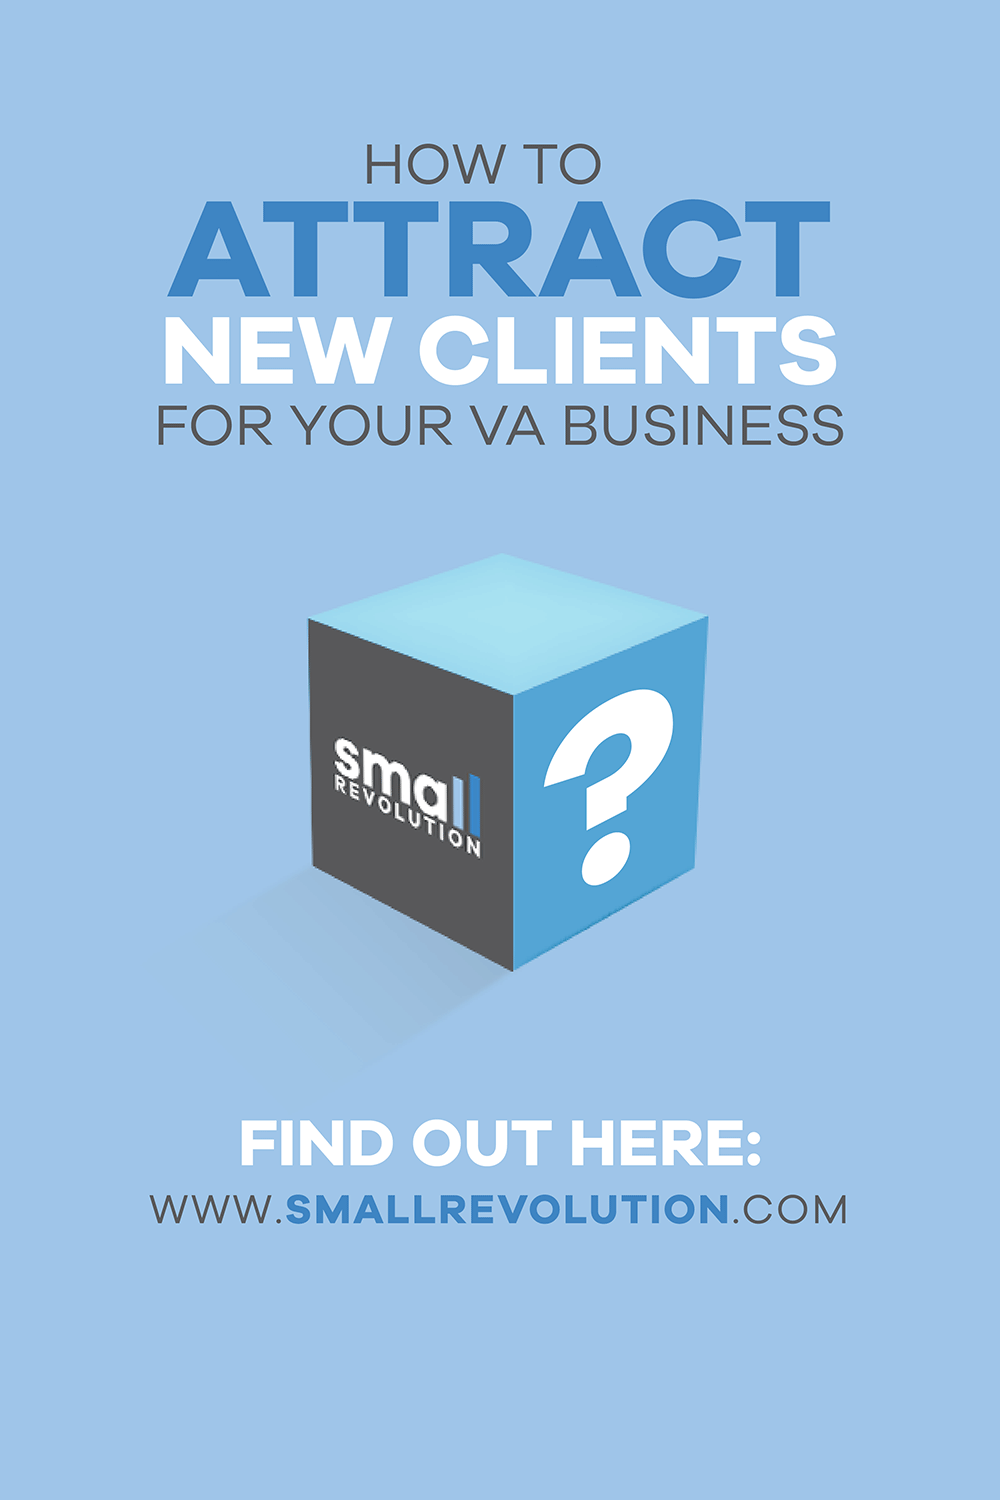 how to attract new clients for your VA business